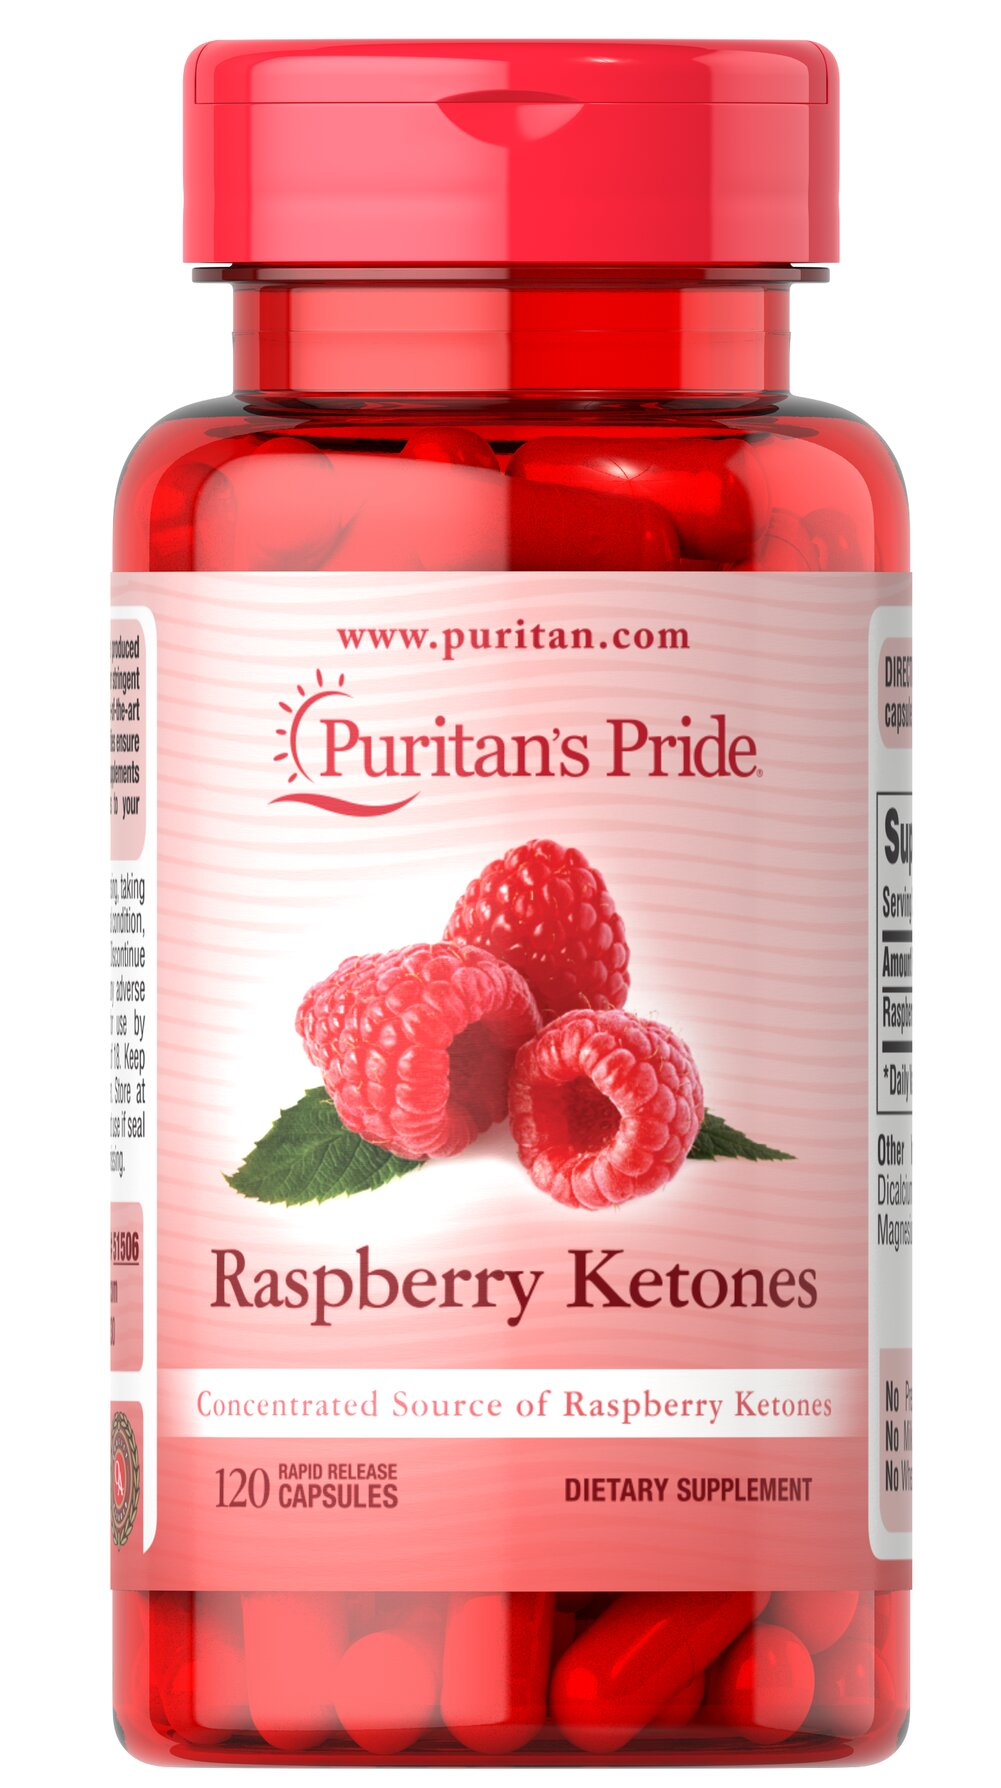 Raspberry Ketones 100 mg <p><span></span>Concentrated source of Raspberry Ketones.</p><p><span></span>100mg in one serving.</p><p><span></span>Rapid release capsules.</p><p>Our Raspberry Ketones are highly concentrated. Each serving of this dietary supplement contains 100mg of raspberry ketones.</p> 120 Rapid Release Capsules 100 mg $8.99